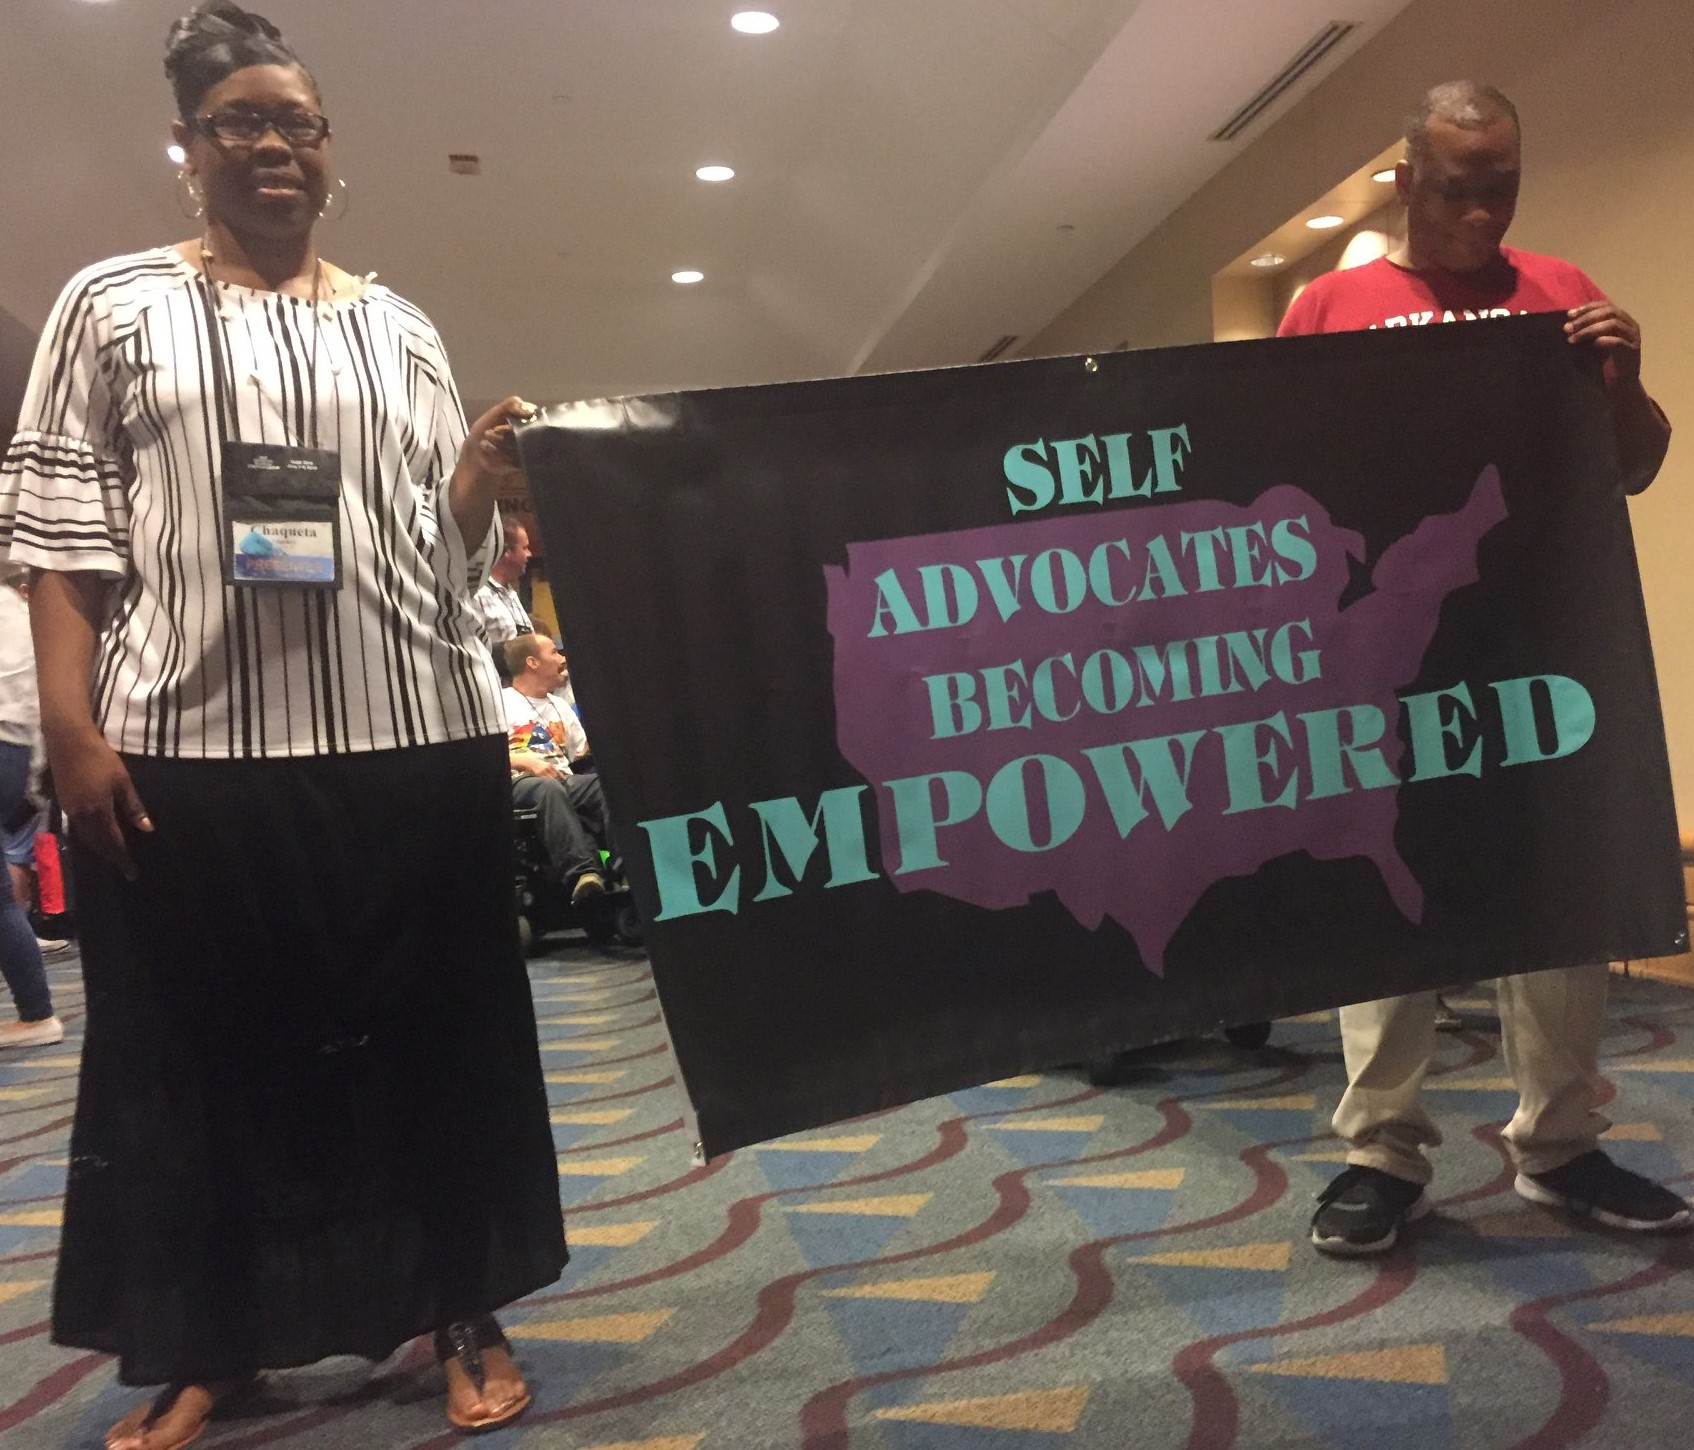 Two People Holding A Banner That Says Self Advocates Becoming Empowered